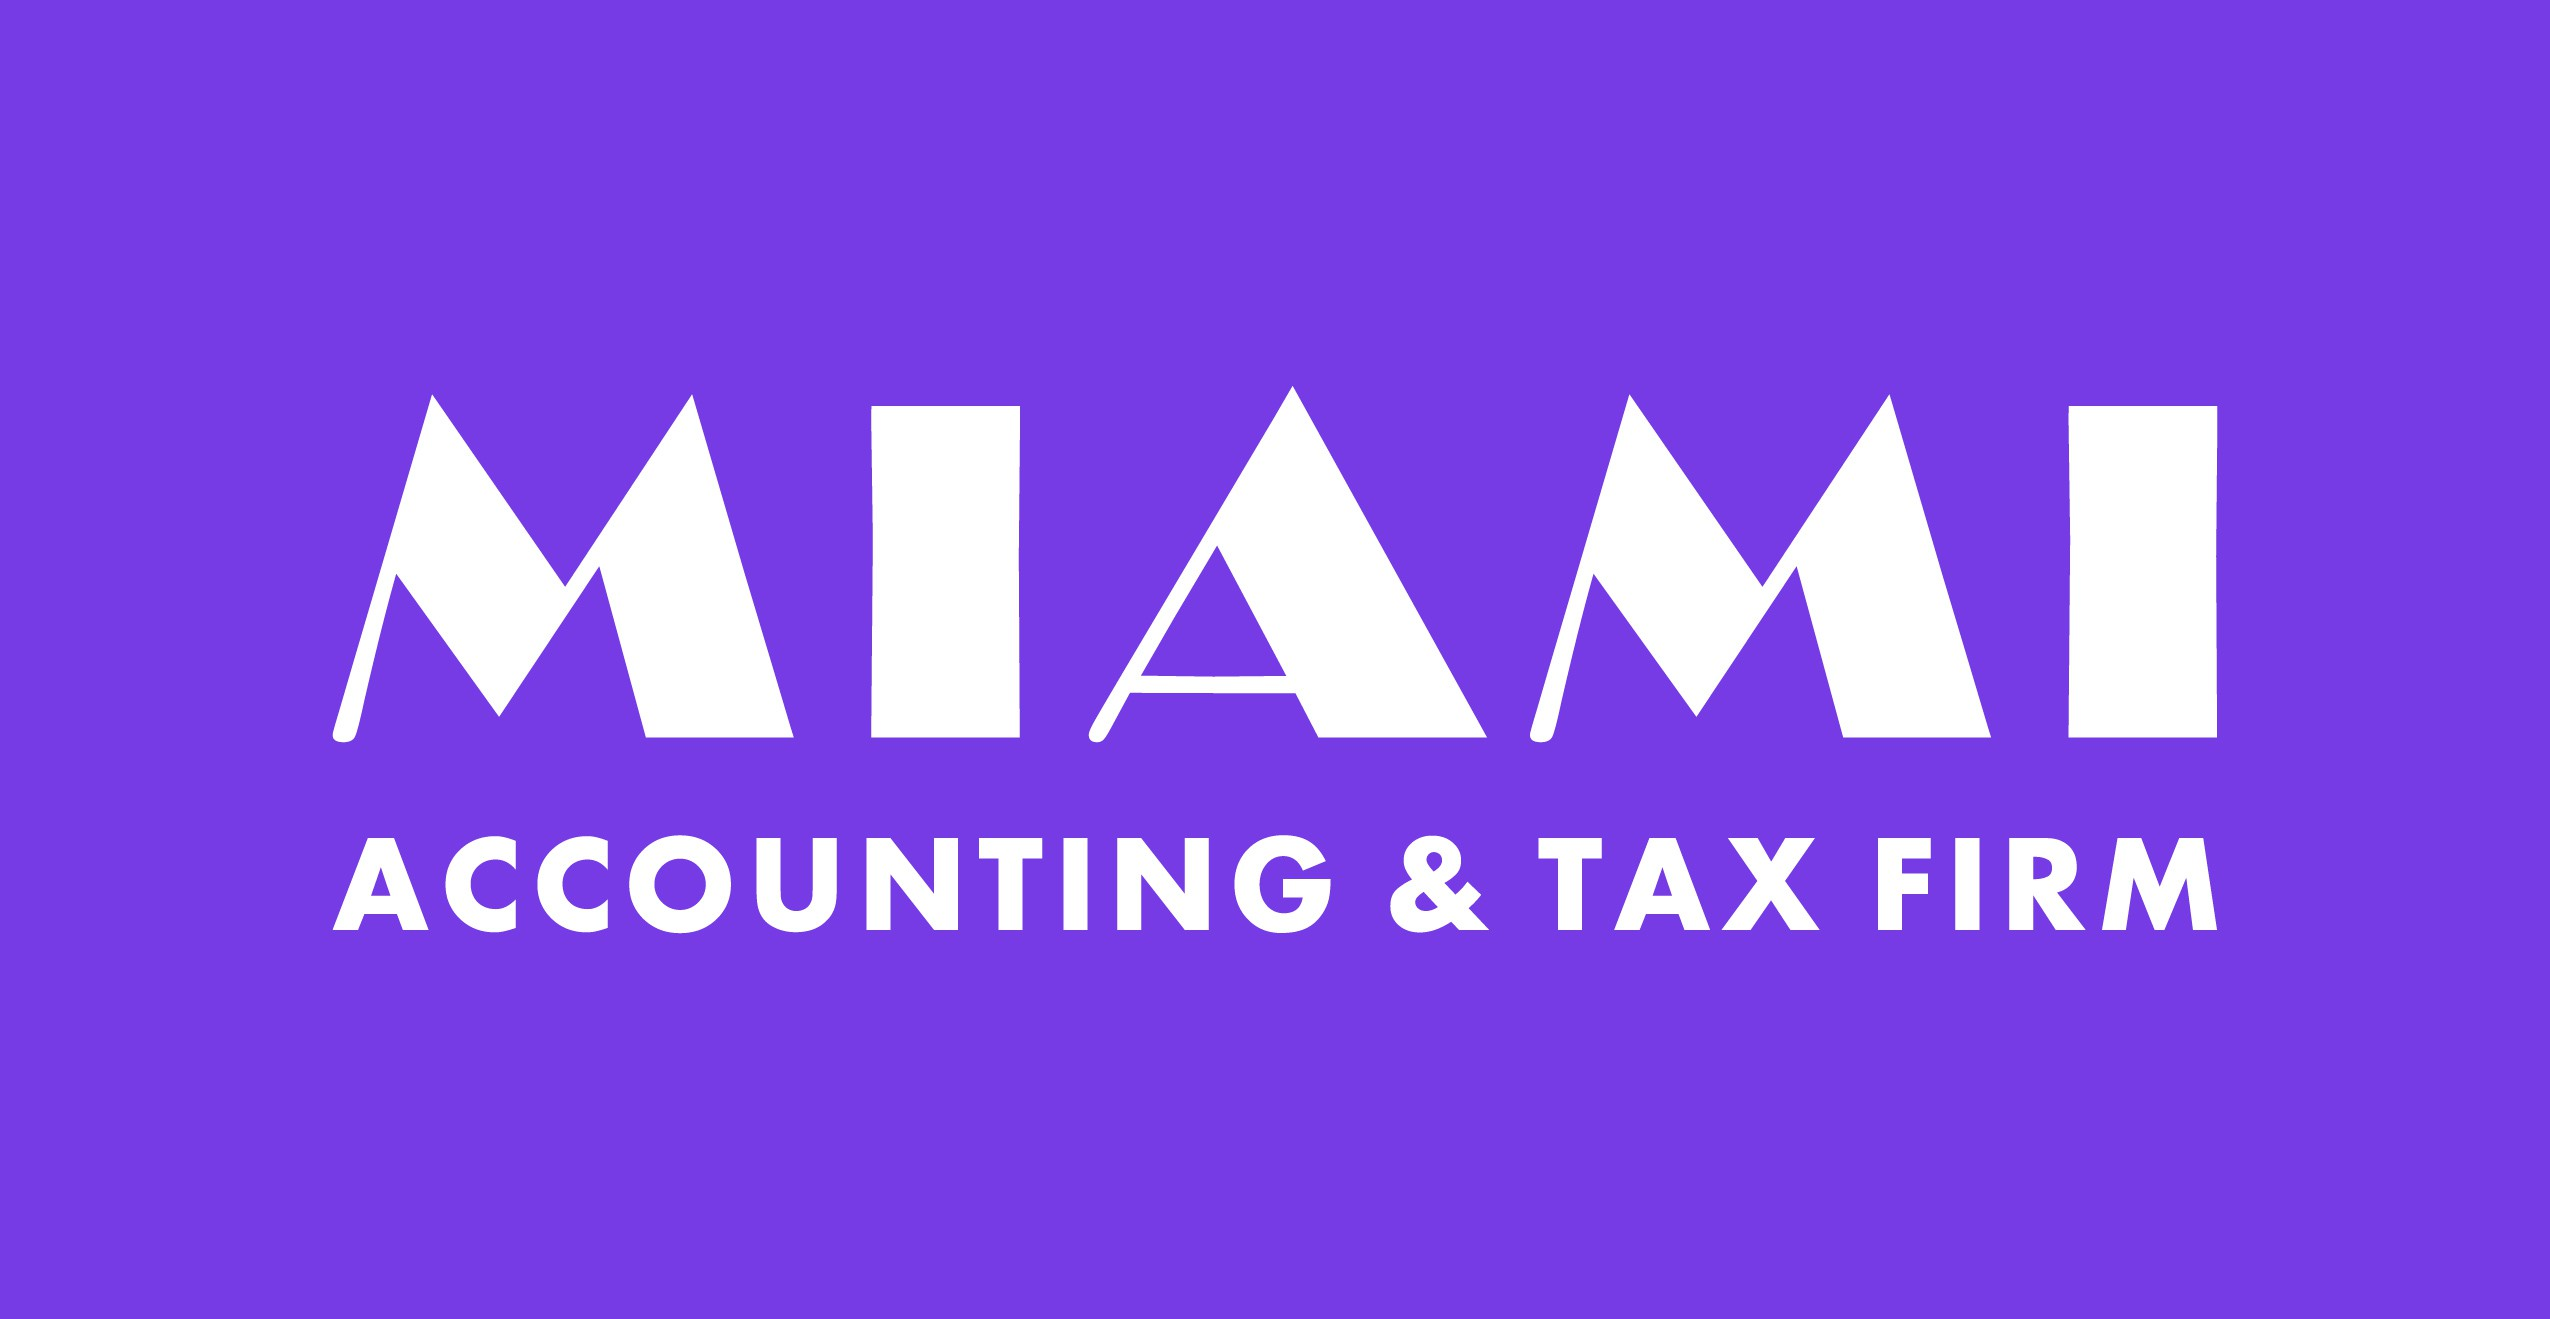 Miami Accounting & Tax Firm